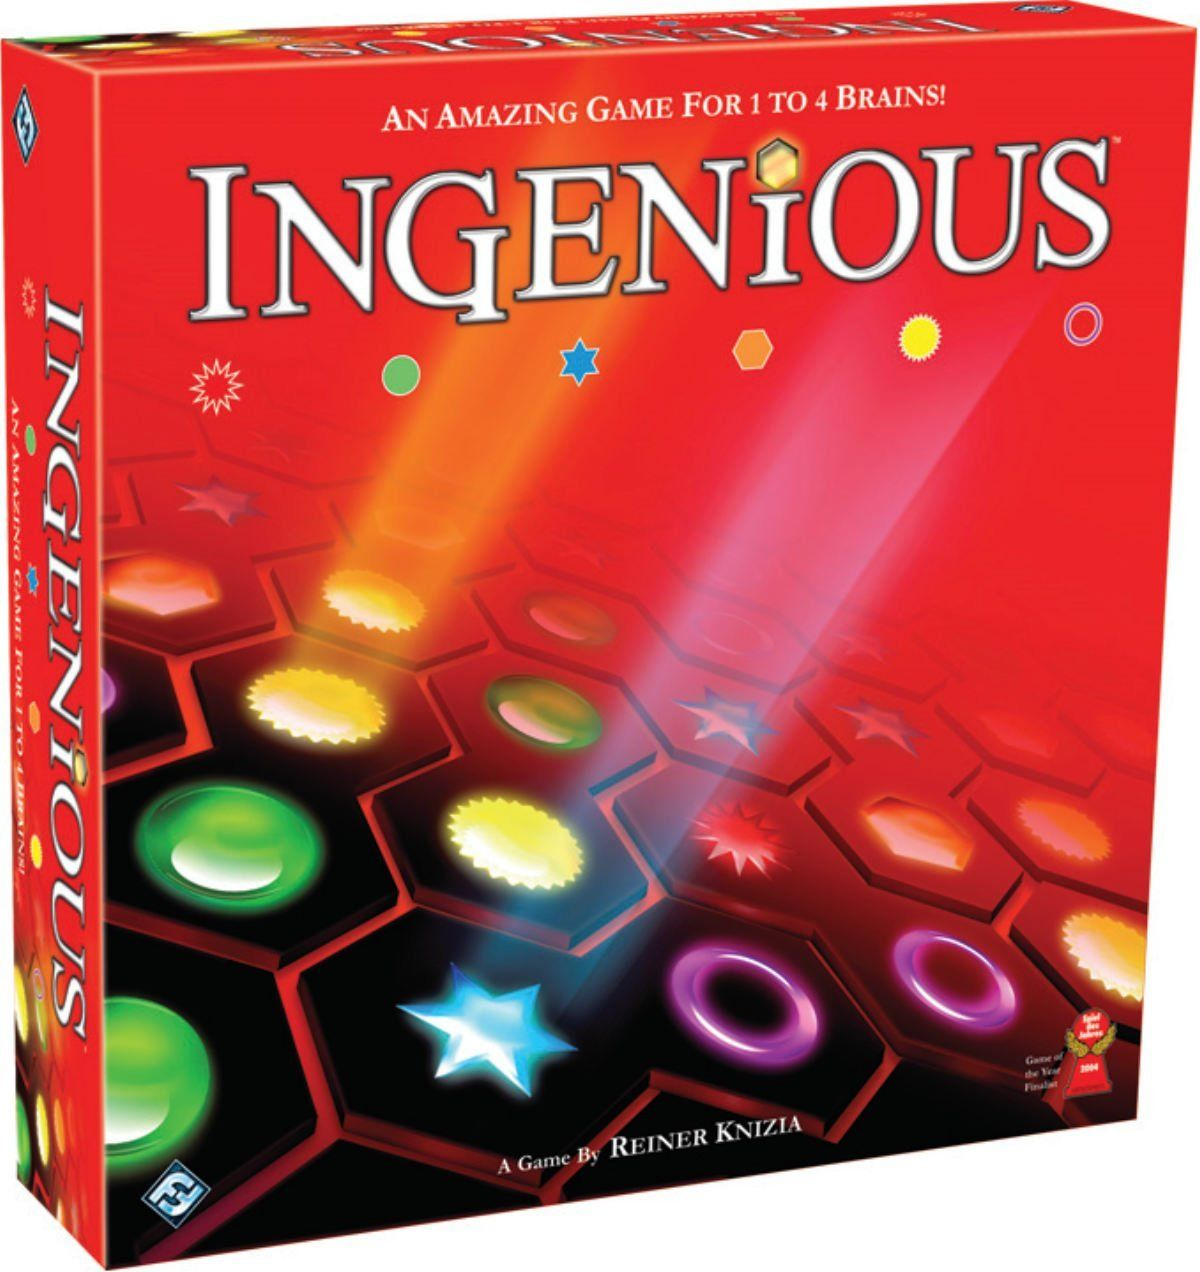 Ingenious from fantasy flight games set card game board